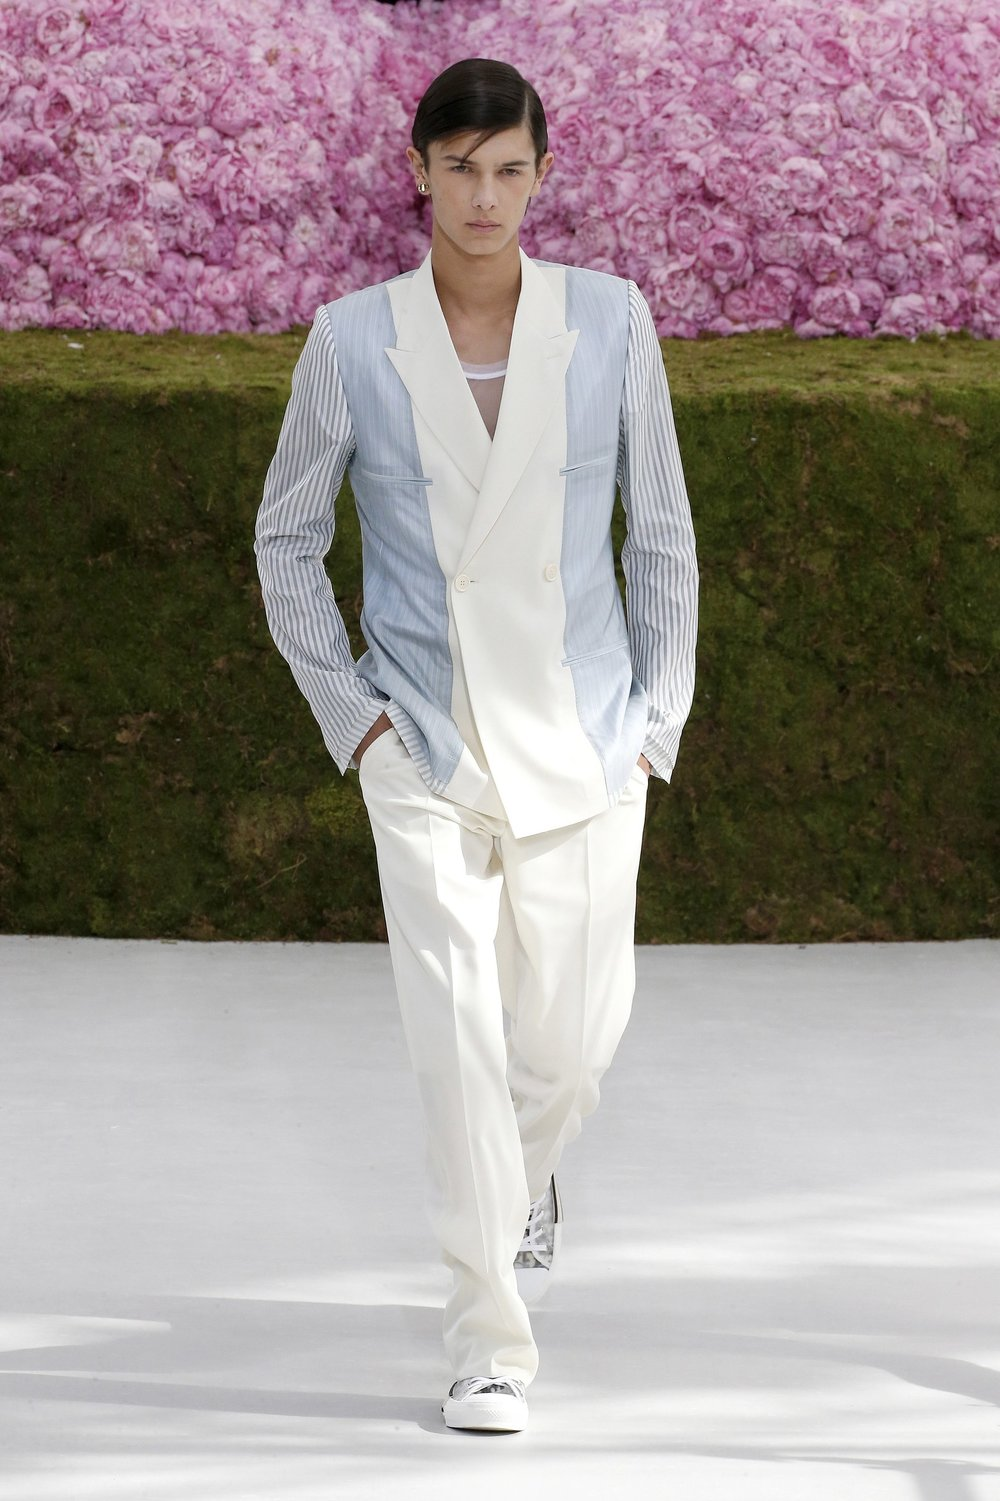 Prince Nicolai of Denmark walking for Dior Homme